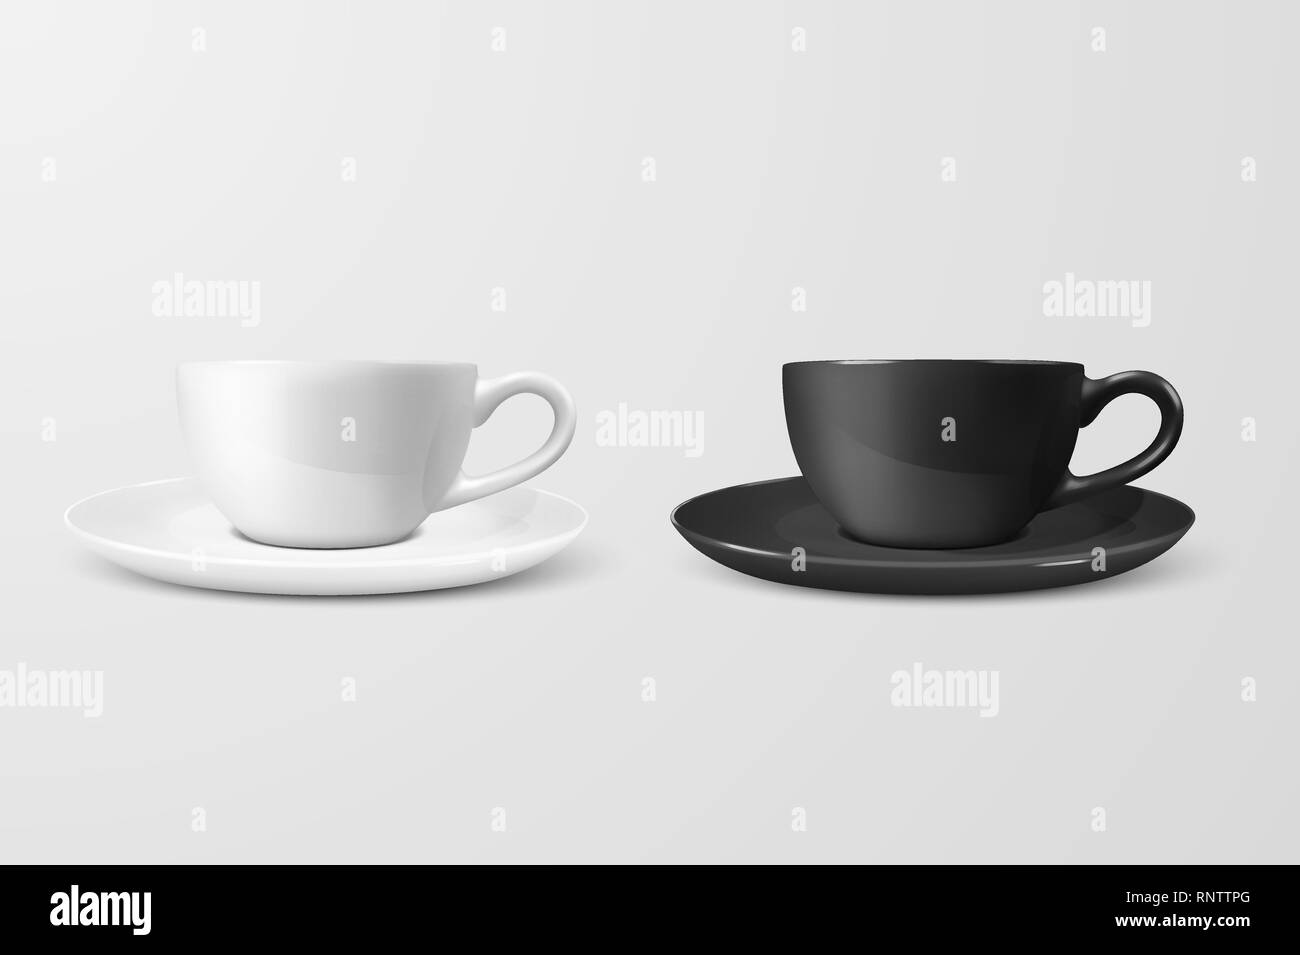 realistic vector 3d blank white and black coffee tea cup mug icon closeup isolated on white background design template of porcelain cup or mug and stock vector image art alamy https www alamy com realistic vector 3d blank white and black coffee tea cup mug icon closeup isolated on white background design template of porcelain cup or mug and image237188856 html